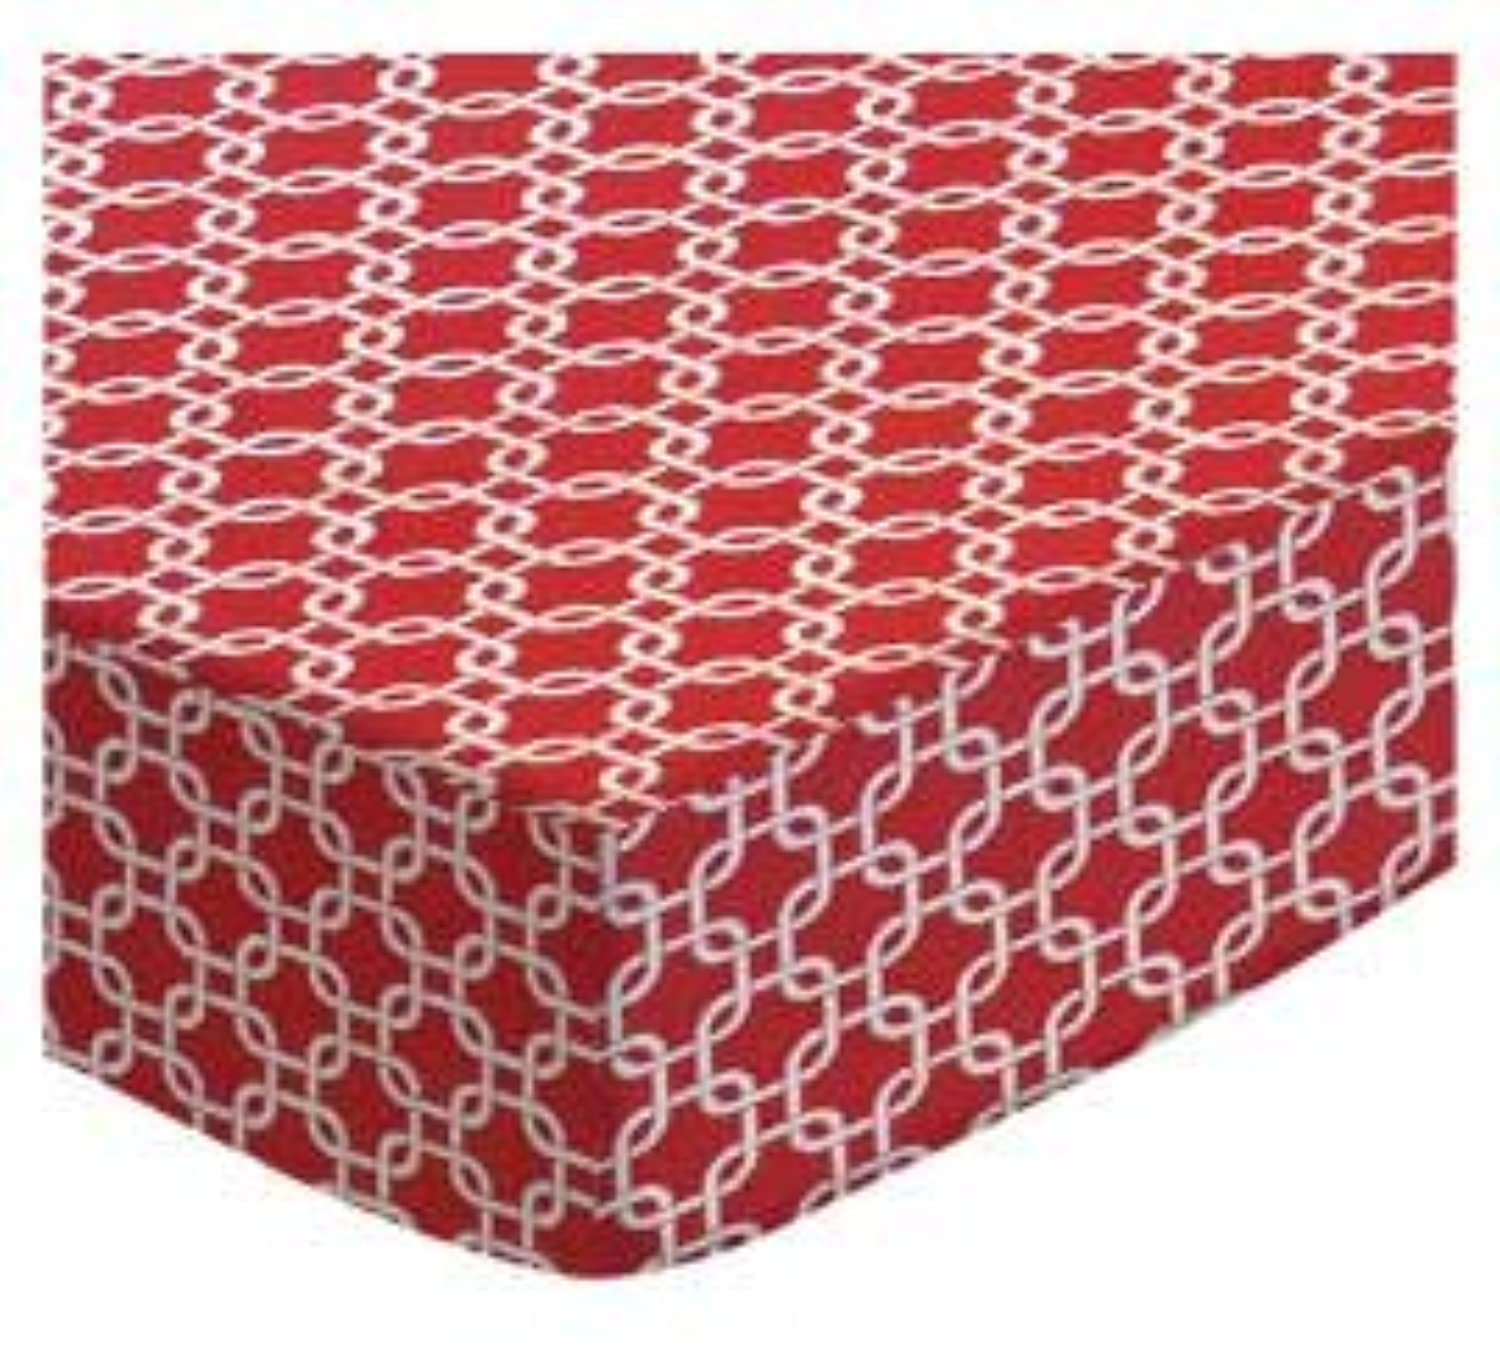 SheetWorld Fitted Cradle Sheet - Red Links - Made In USA by sheetworld